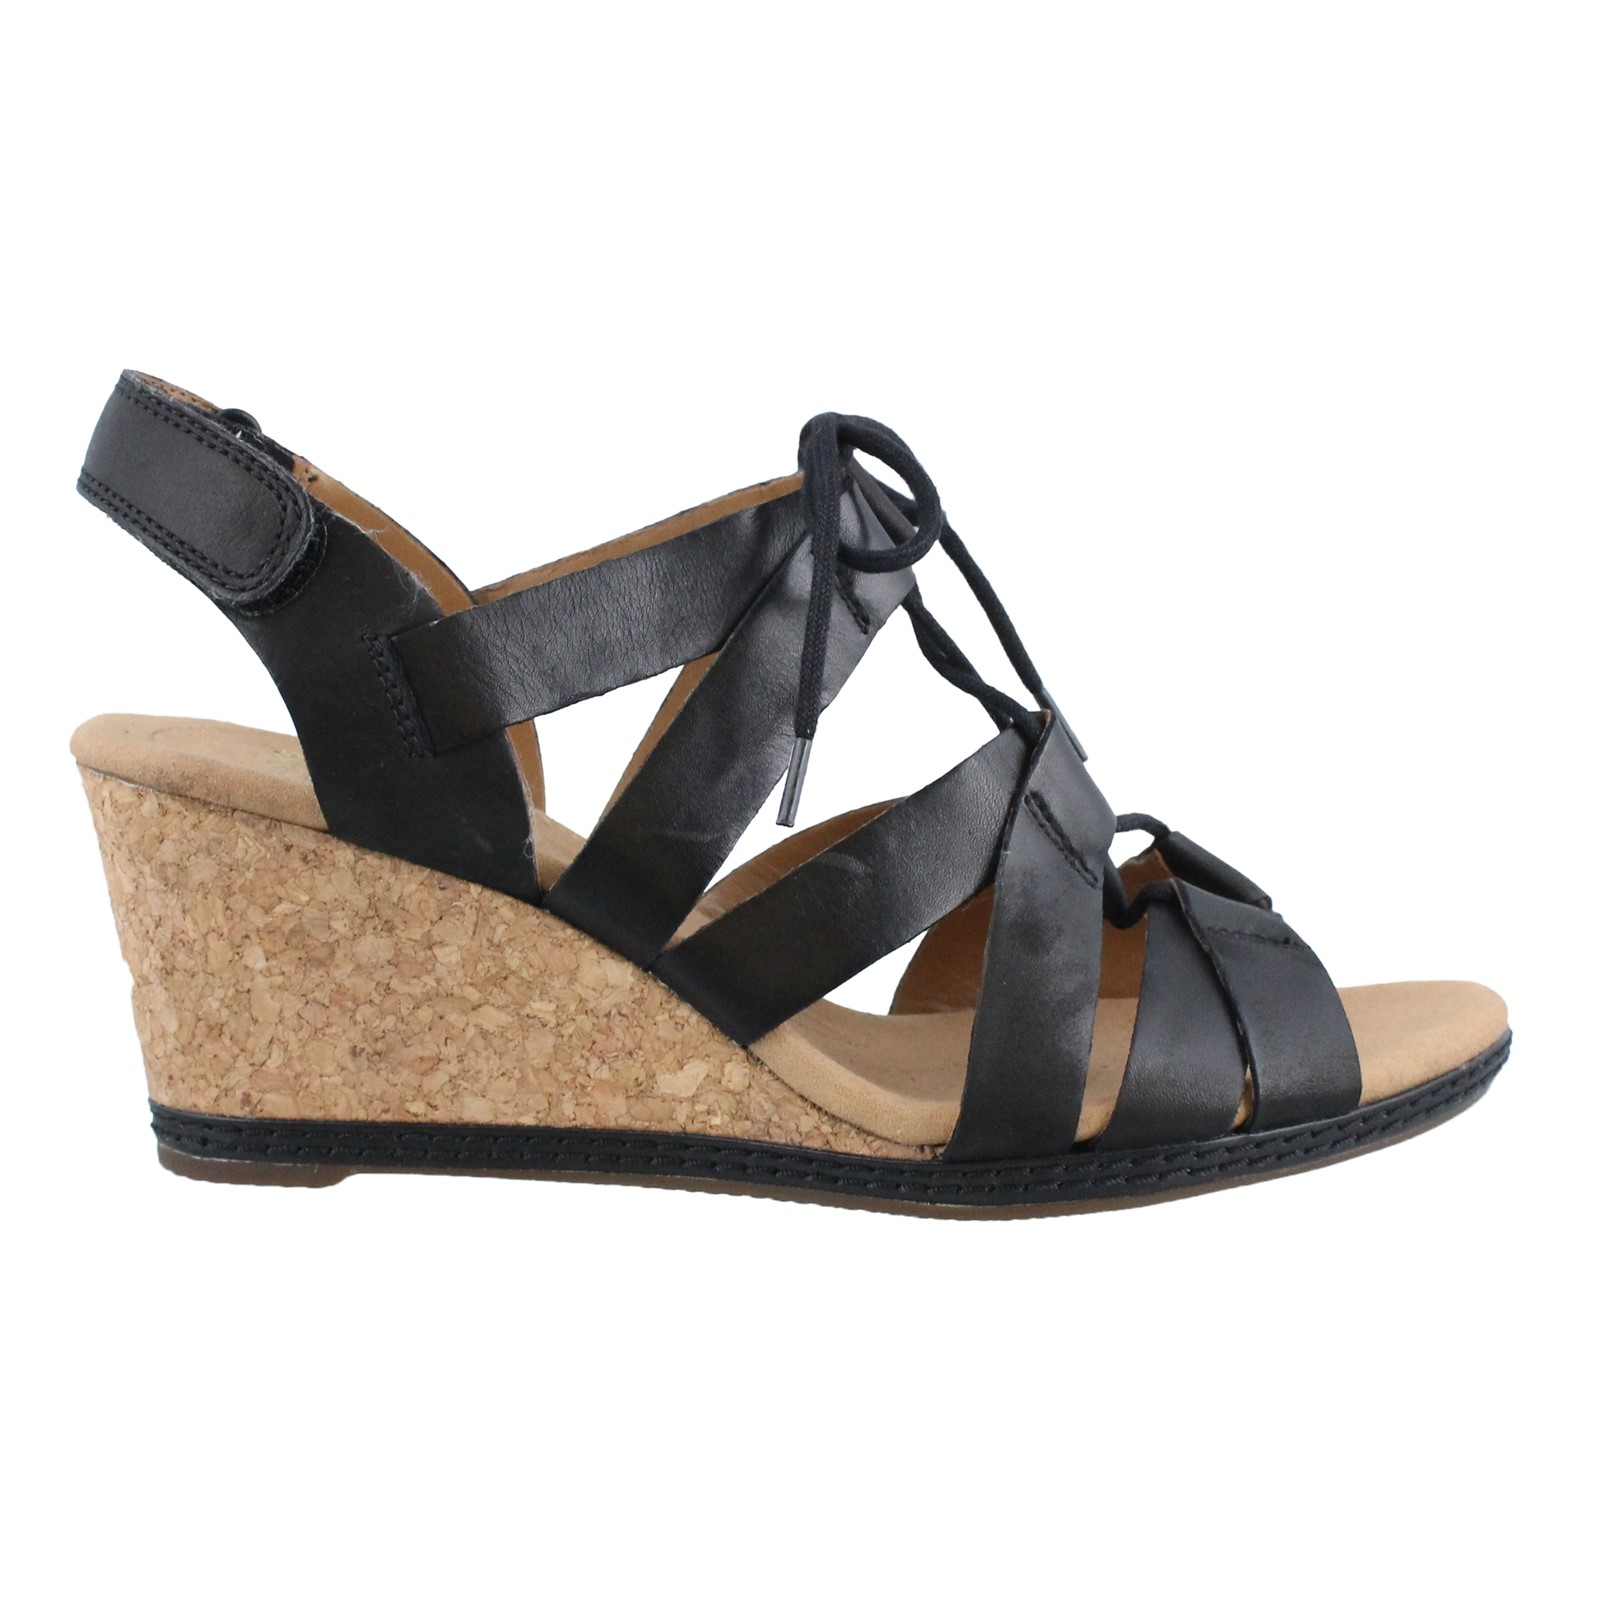 Women's Clarks, Helio Mindin High Heel Wedge Sandals